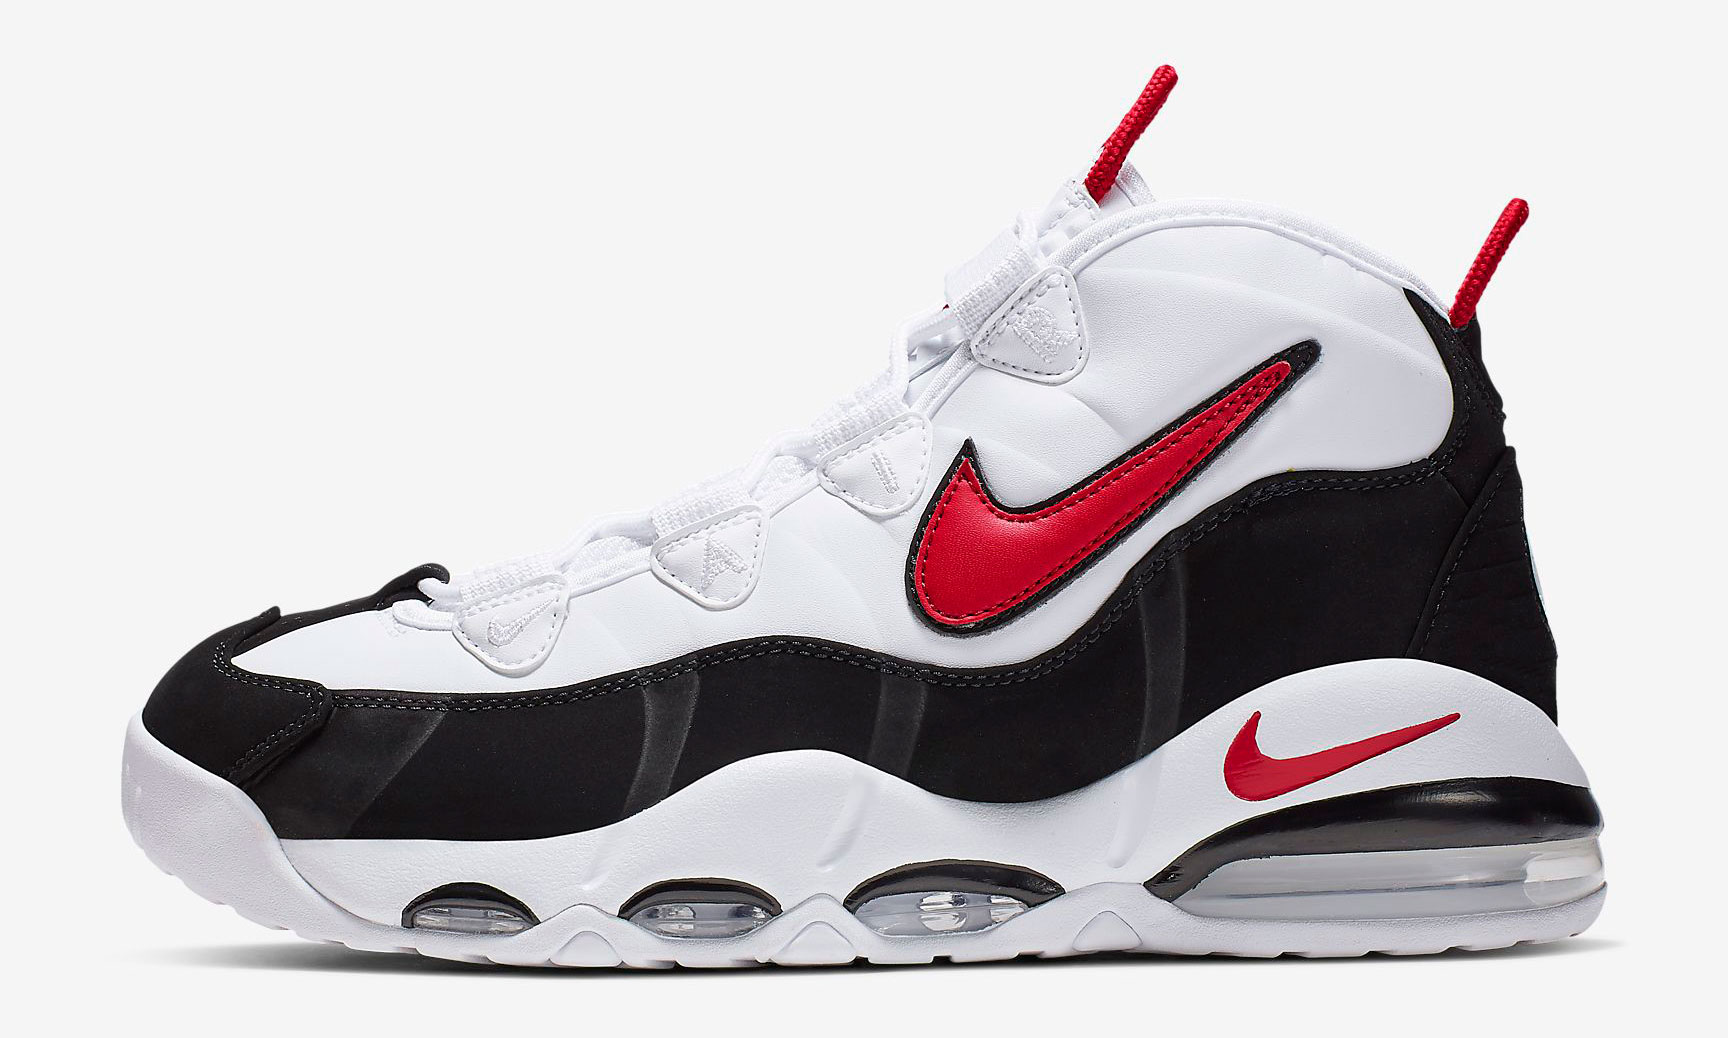 nike-air-max-uptempo-95-chicago-where-to-buy